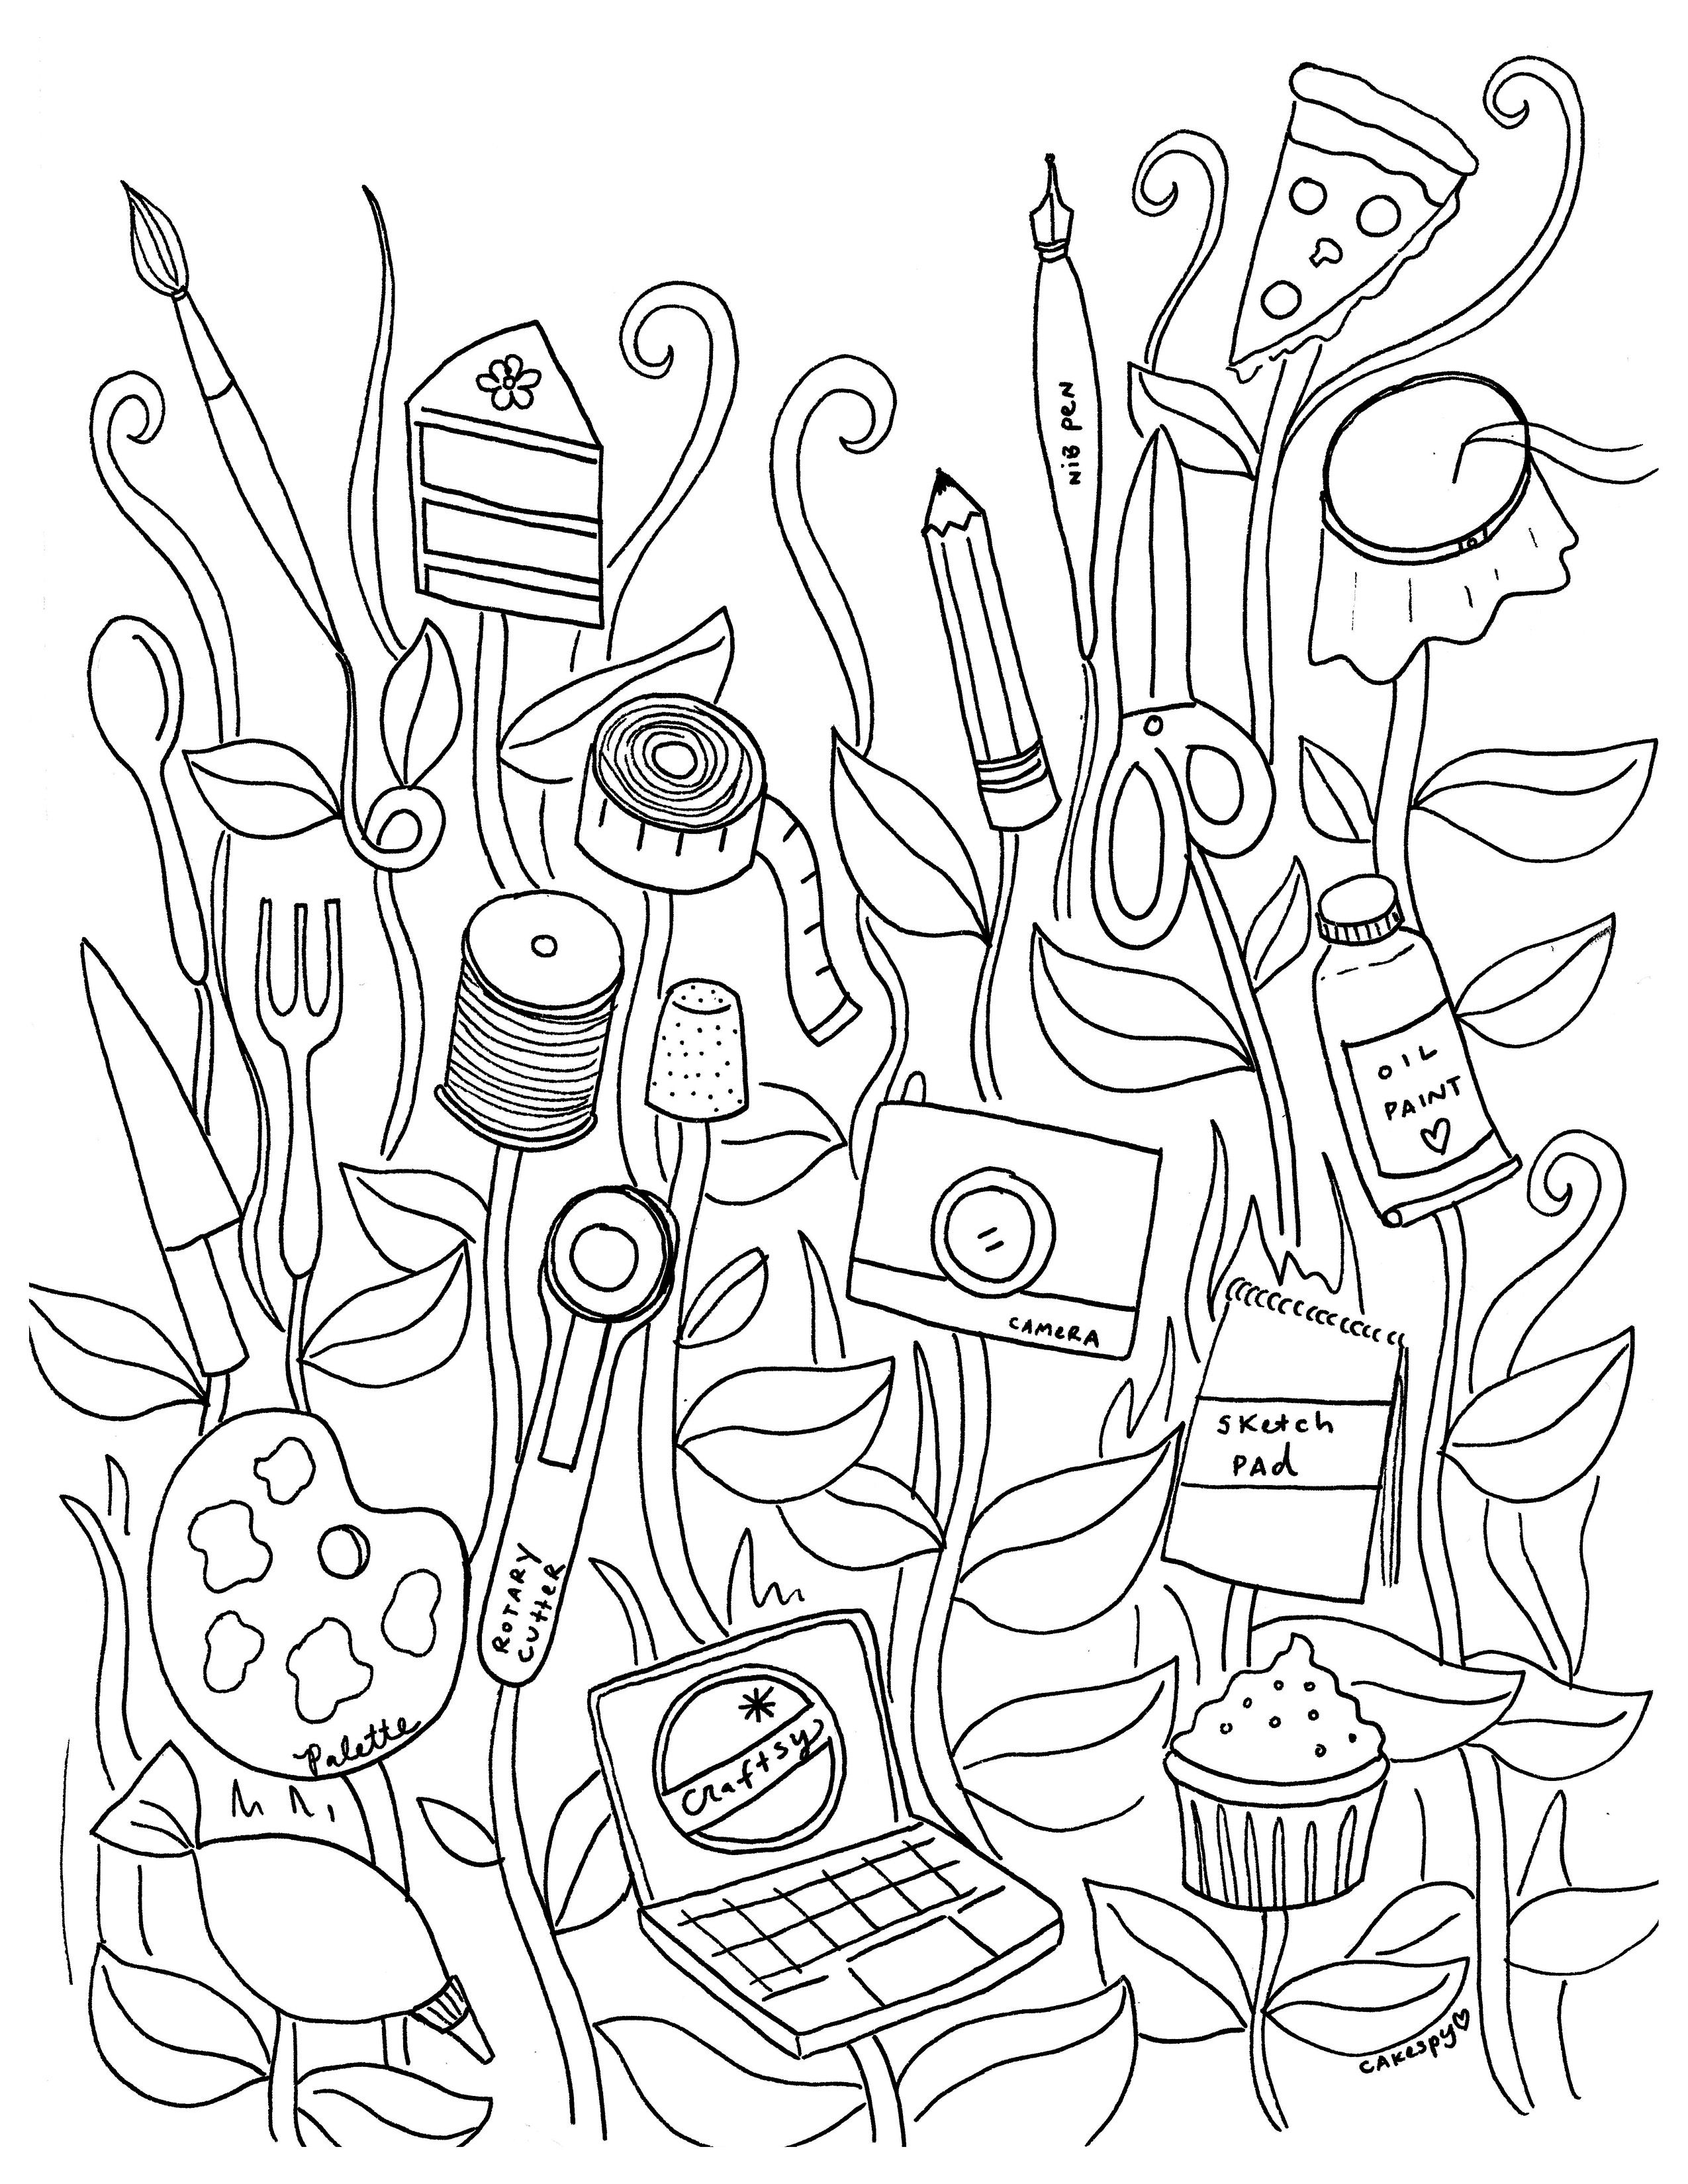 Free Coloring Book Pages for Adults | Ausmalen, Ausmalbilder und ...